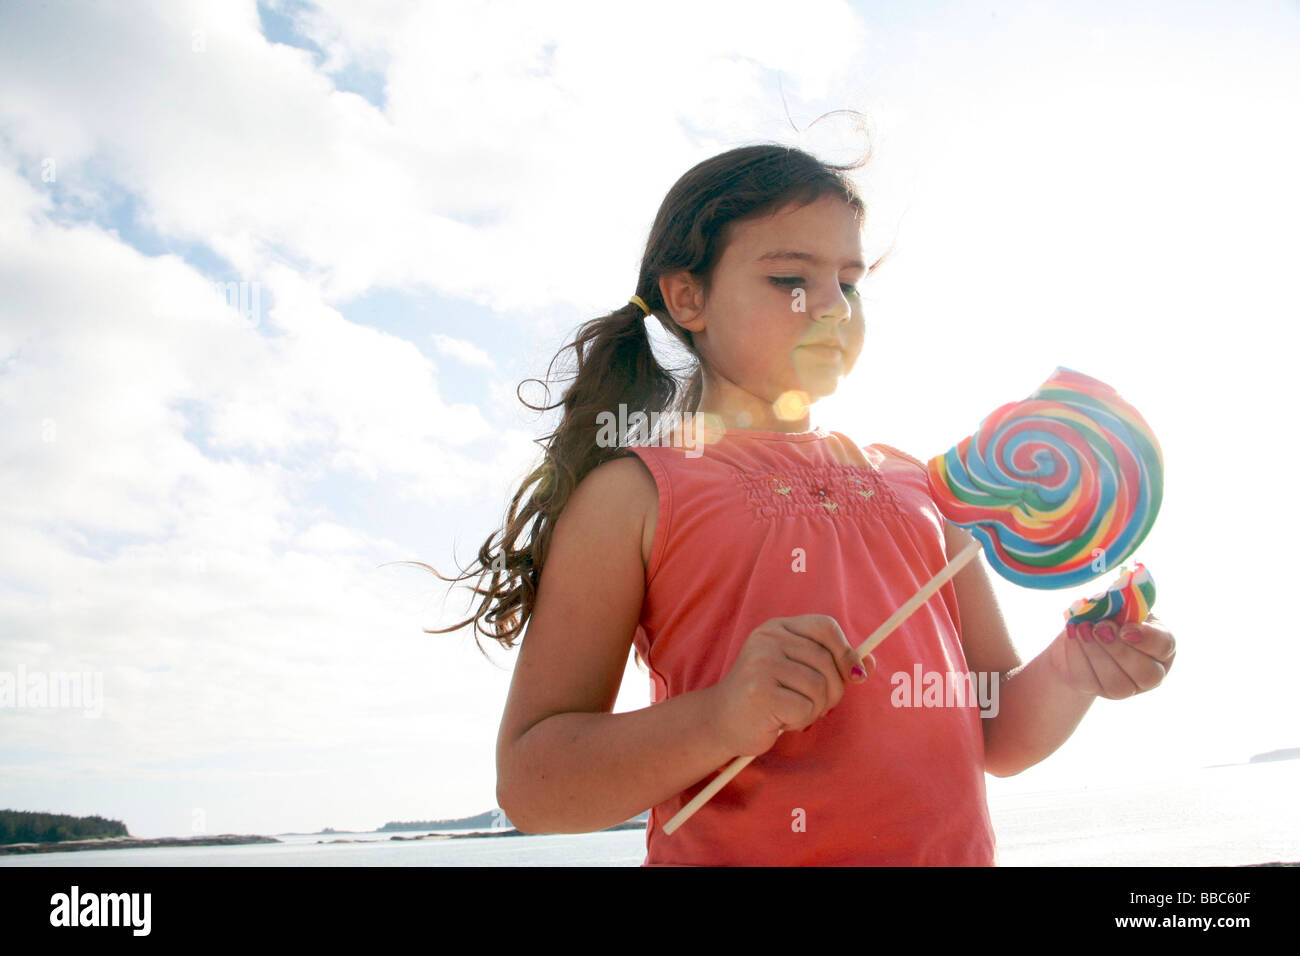 Little girl with huge lolly pop - Stock Image